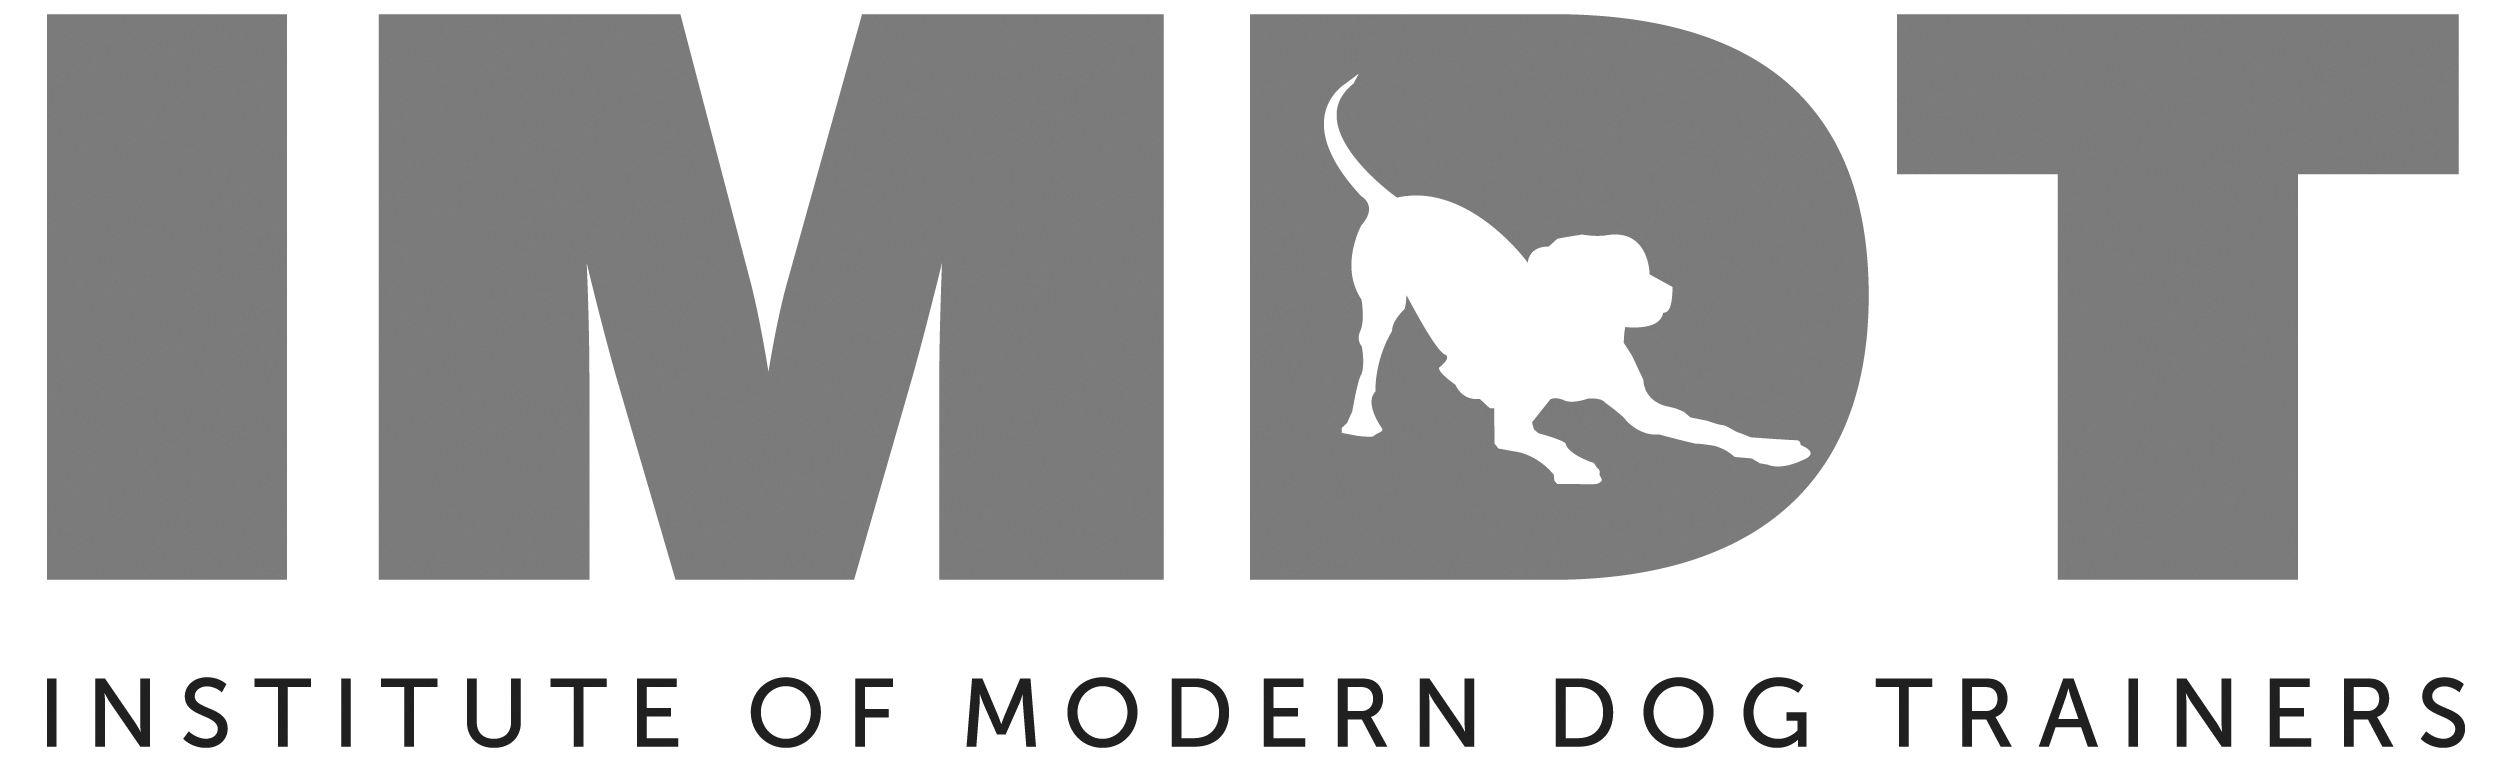 Institute of Modern Dog Trainers Logo